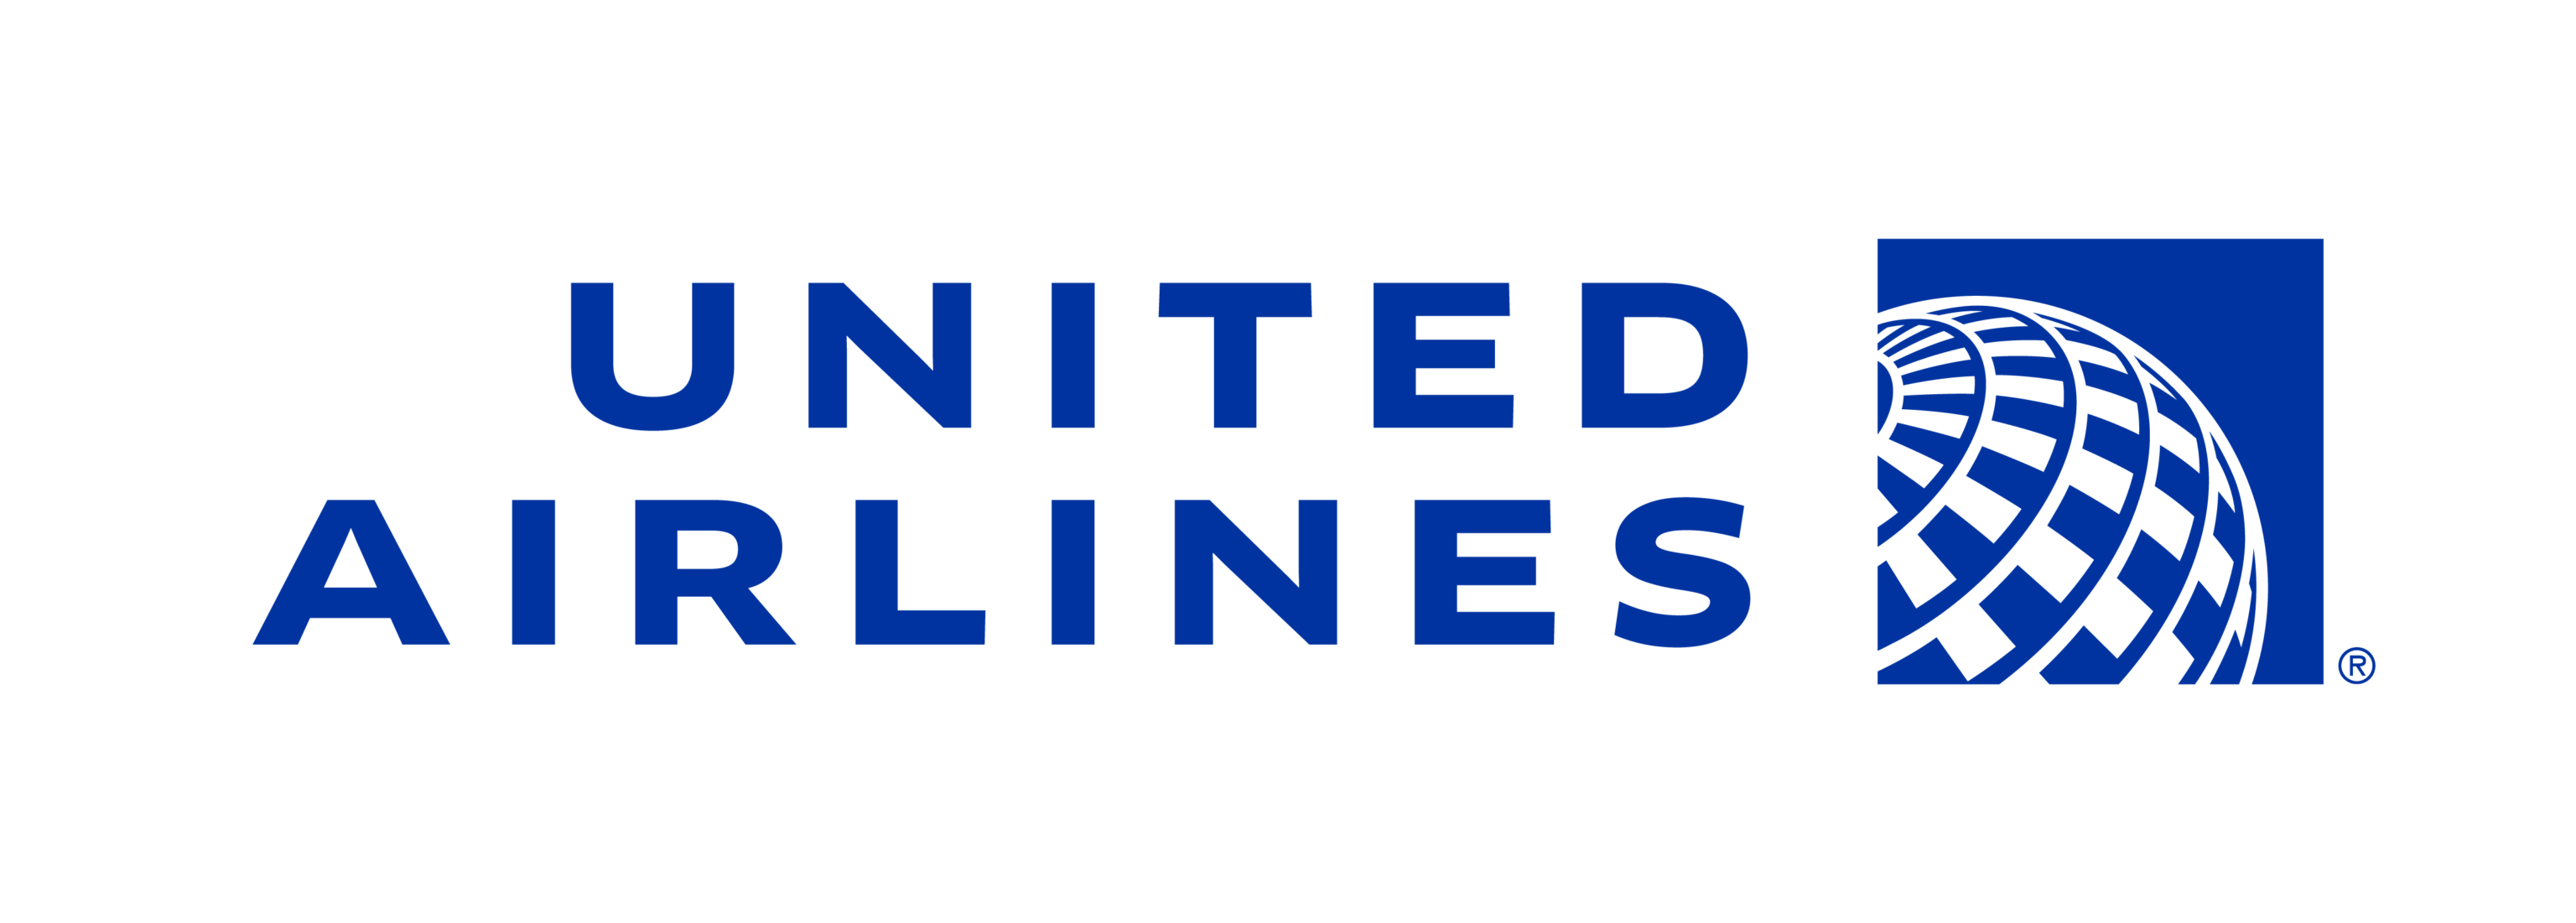 United Airlines Is Connecting People Uniting The World Bcd Travel Move Global Site